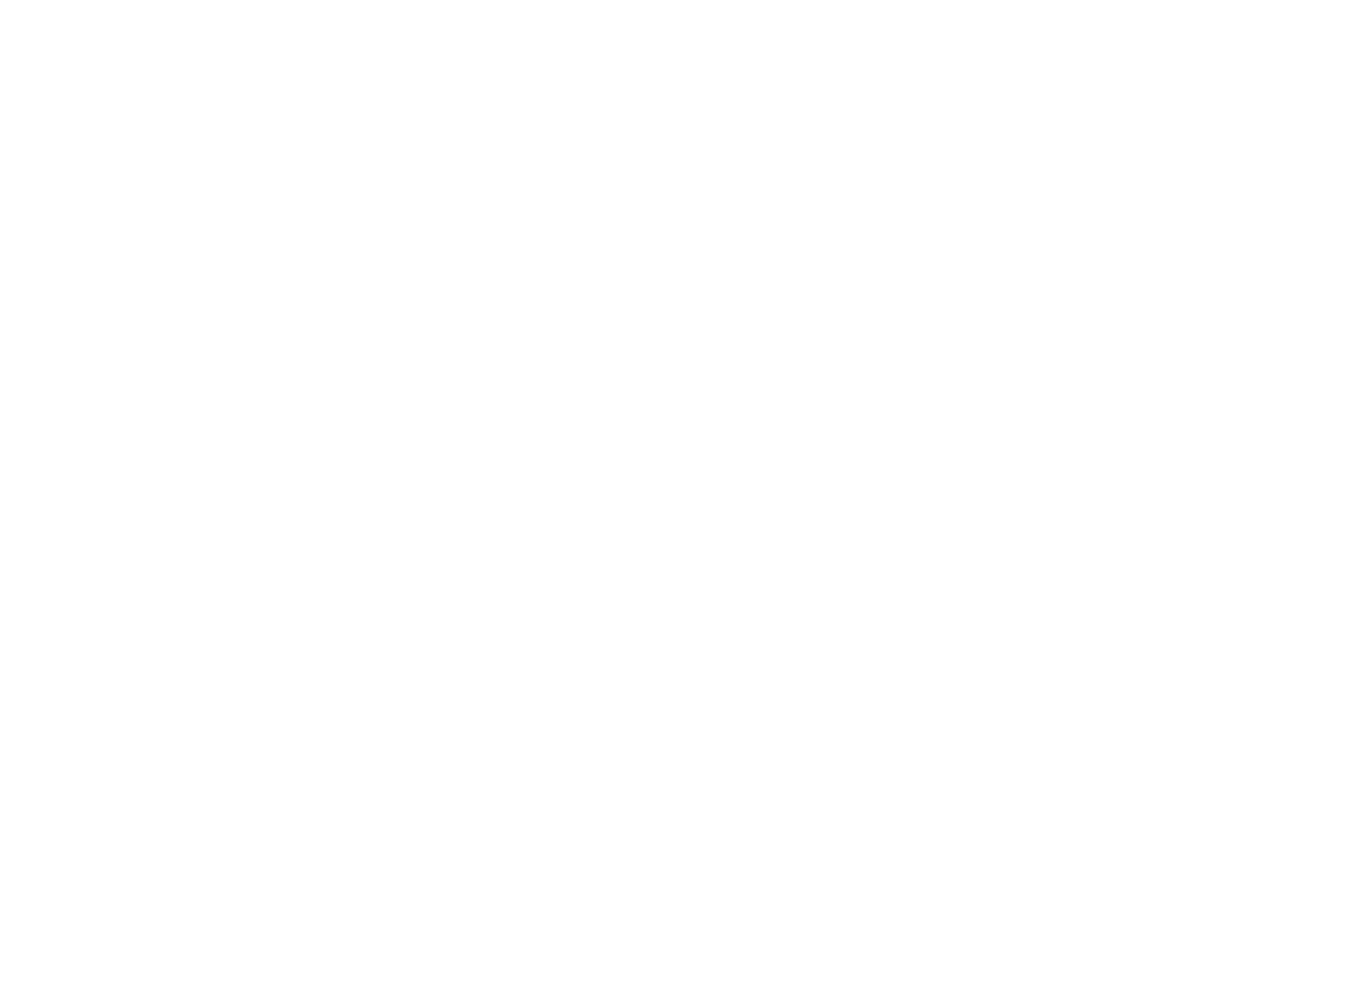 Compass High School